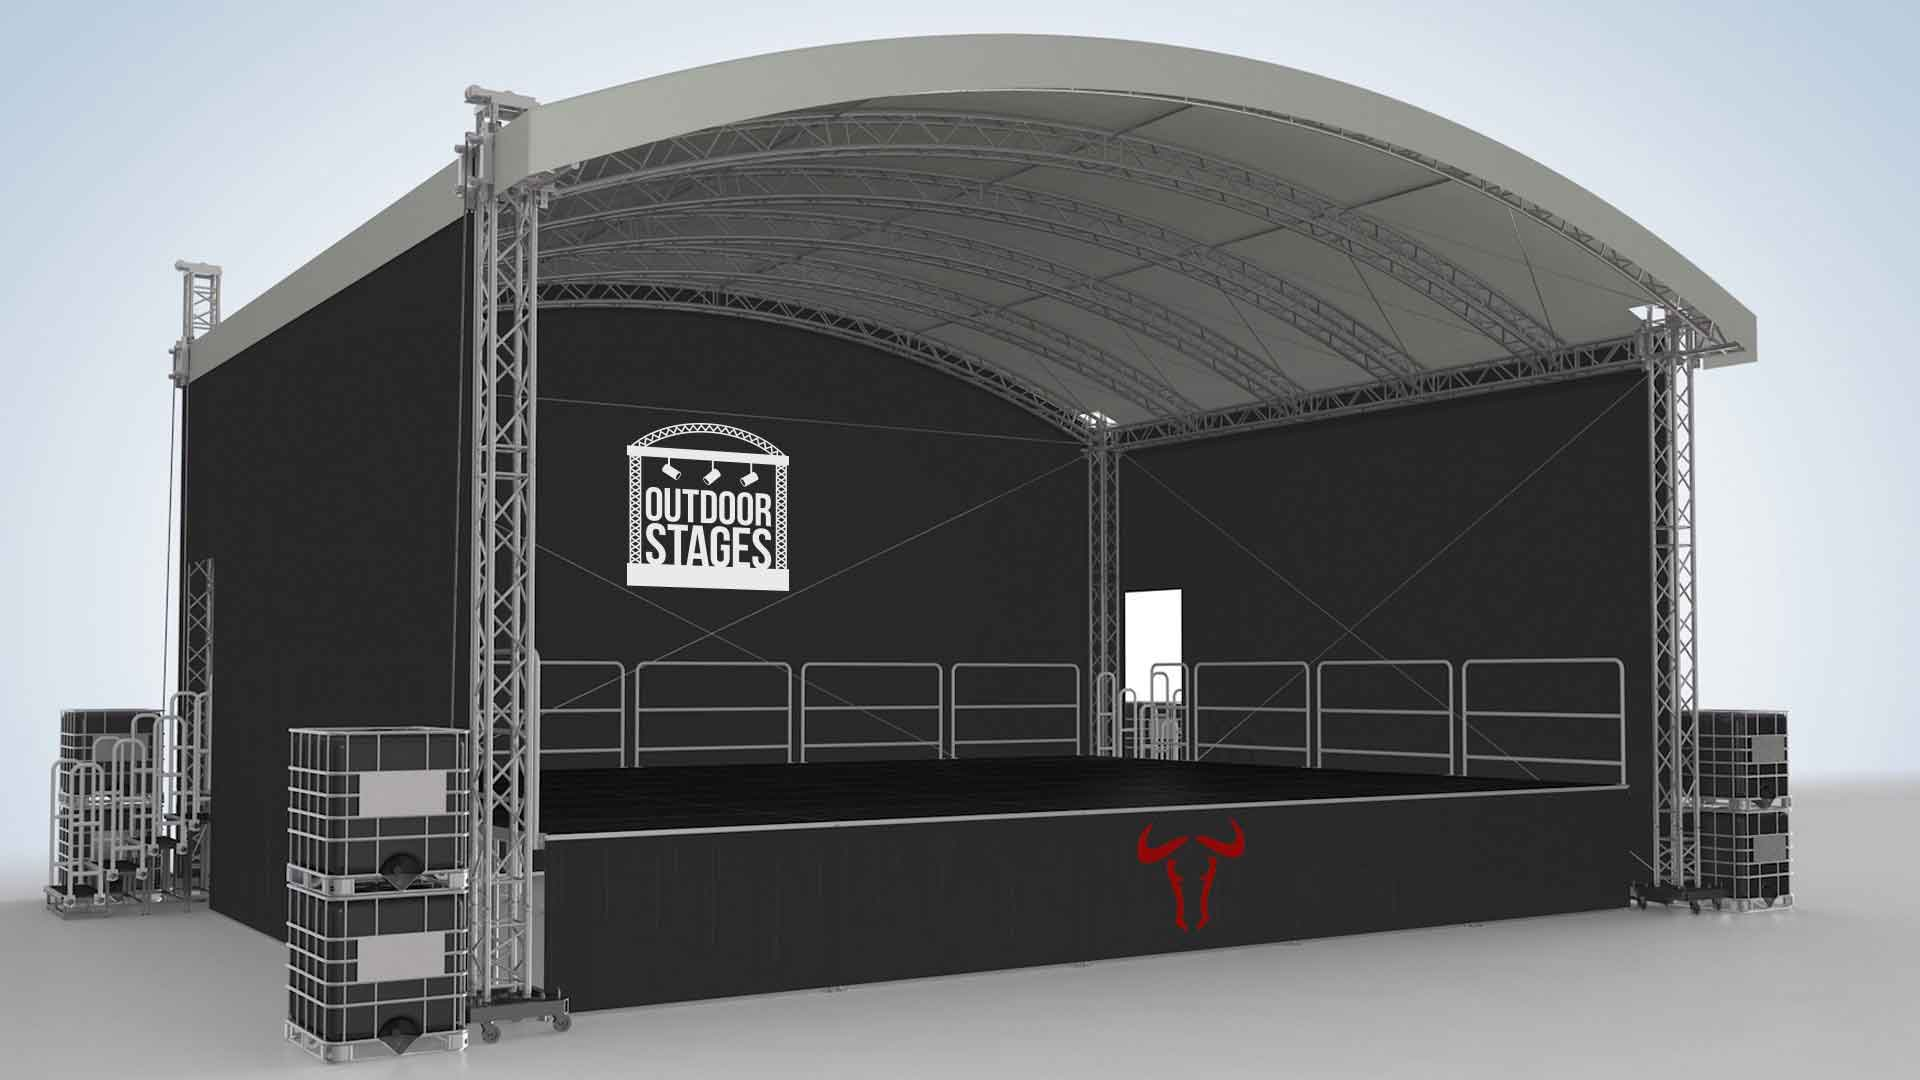 Outdoor Stages Arcroof